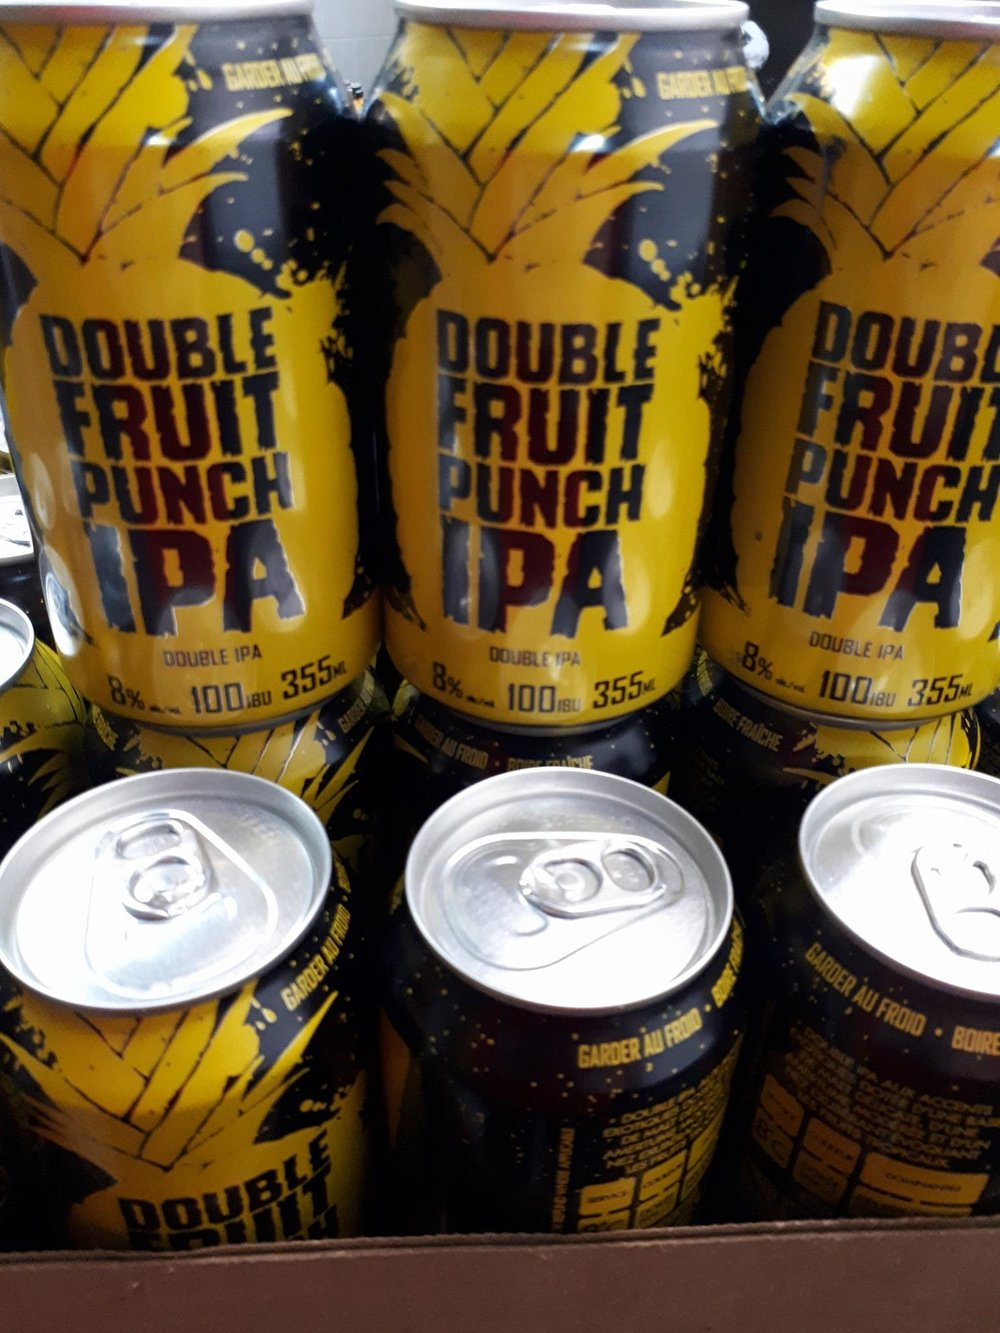 DOUBLE FRUIT PUNCH -